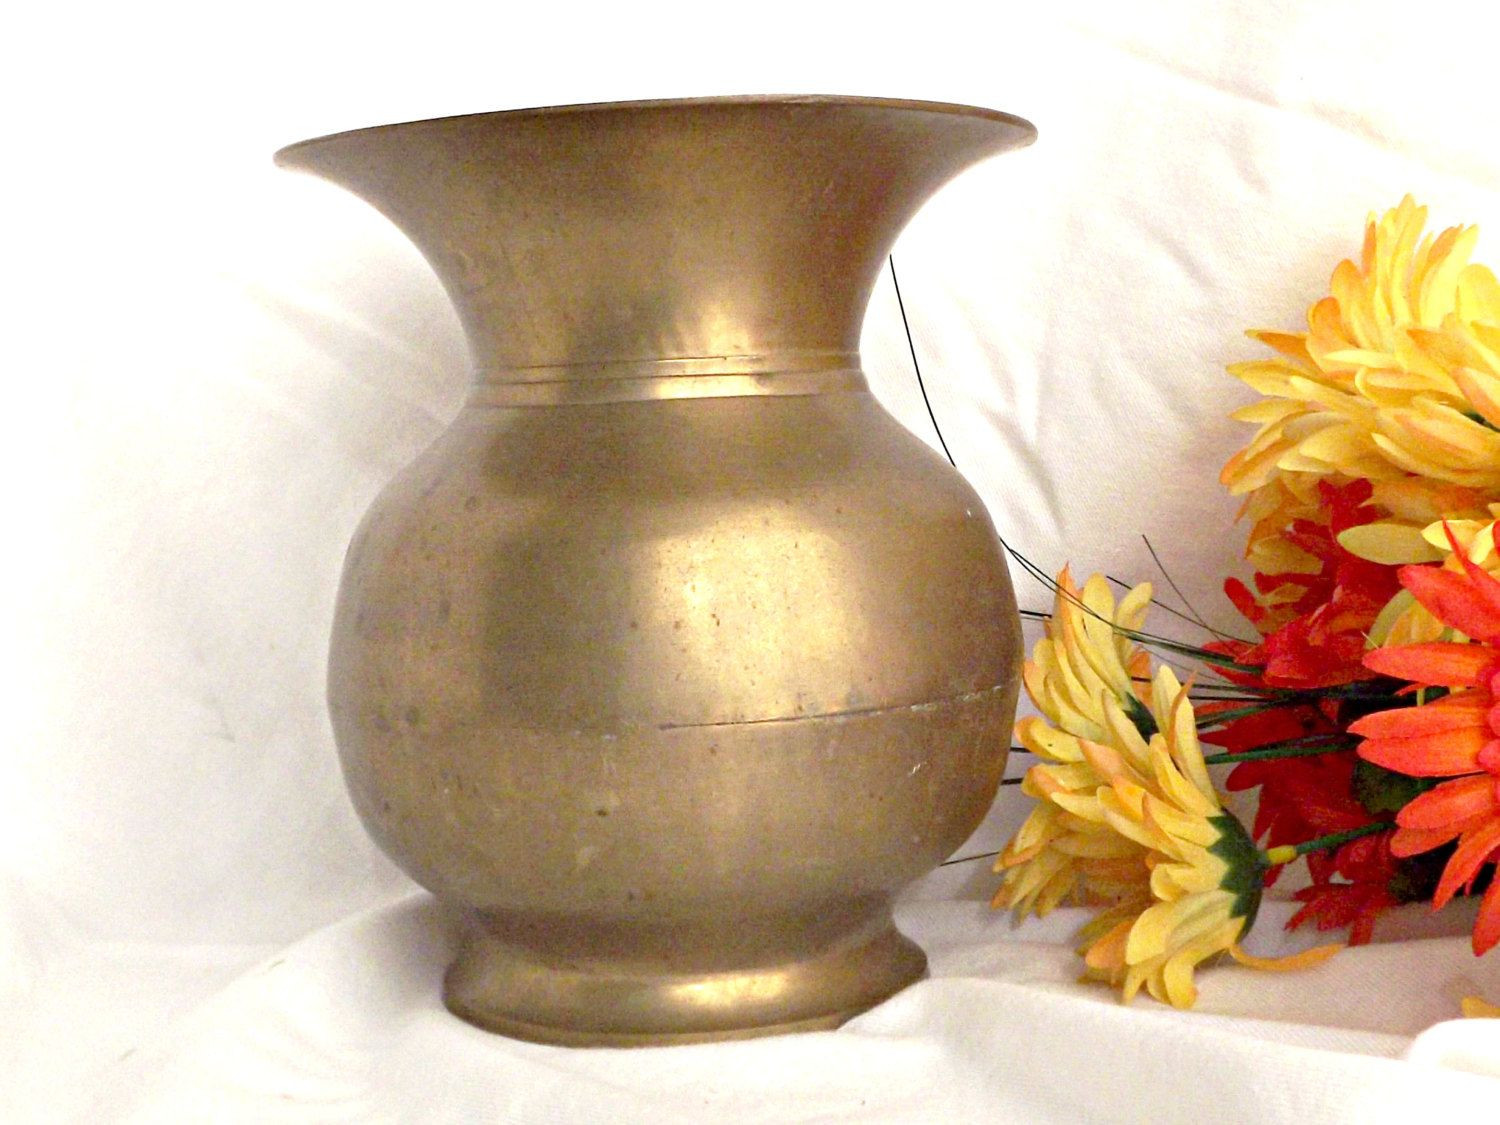 antique brass vase made in india of solid brass vase large brass spittoon vintage decor spittoon throughout solid brass vase large brass spittoon vintage decor spittoon shaped brass vase